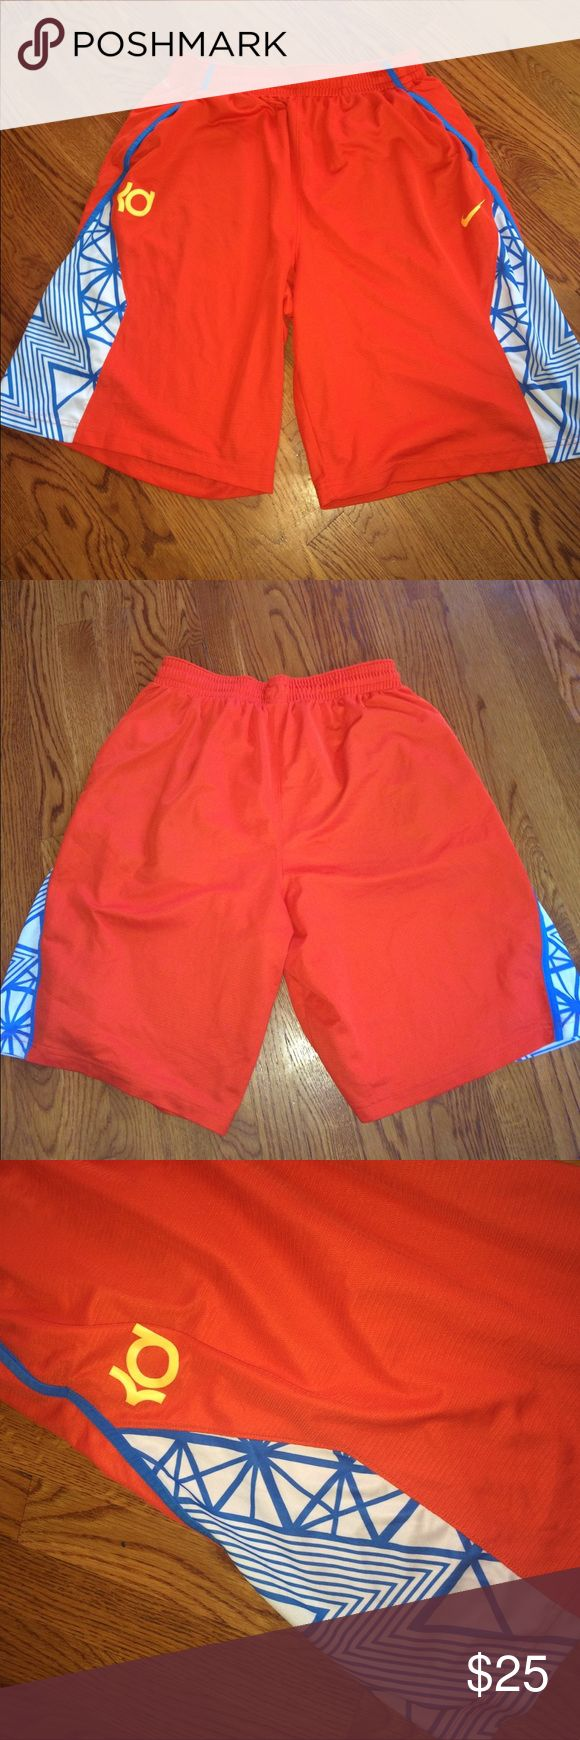 💥PRICE DROP!!💥Nike Dri-Fit KD Shorts Nike Dri-fit KD shorts. Size XL. Made of 100% polyester. In great condition! Just one tiny pulley on the back of the left leg (pictured.) Nike Shorts Athletic